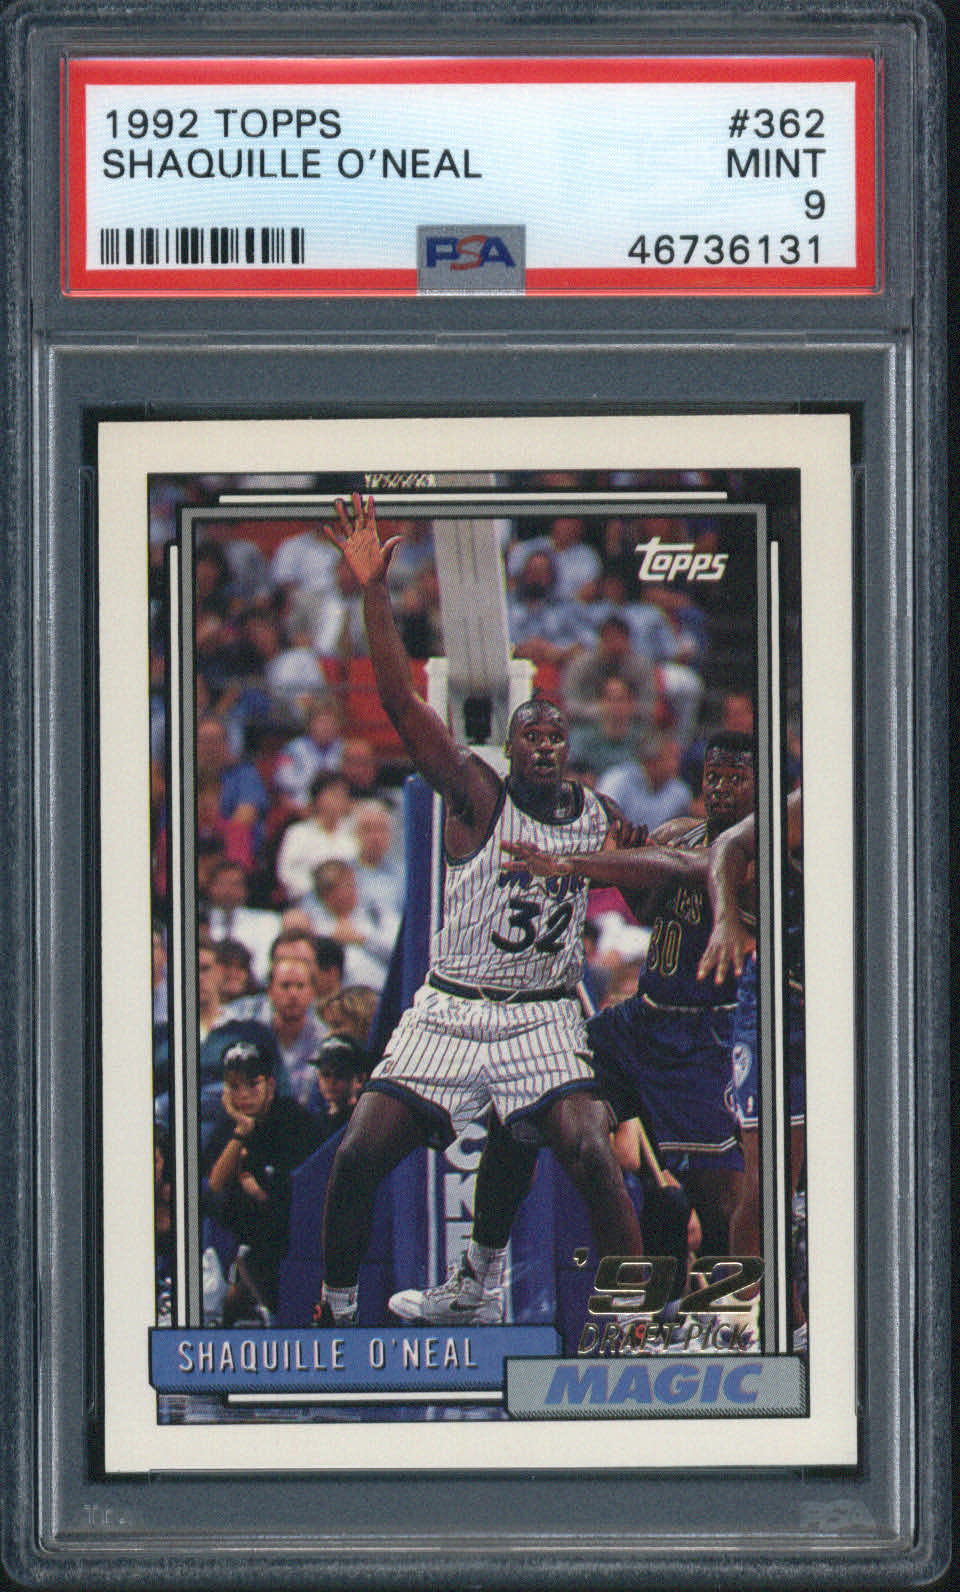 1992 Topps #362 Shaquille O'Neal PSA 9